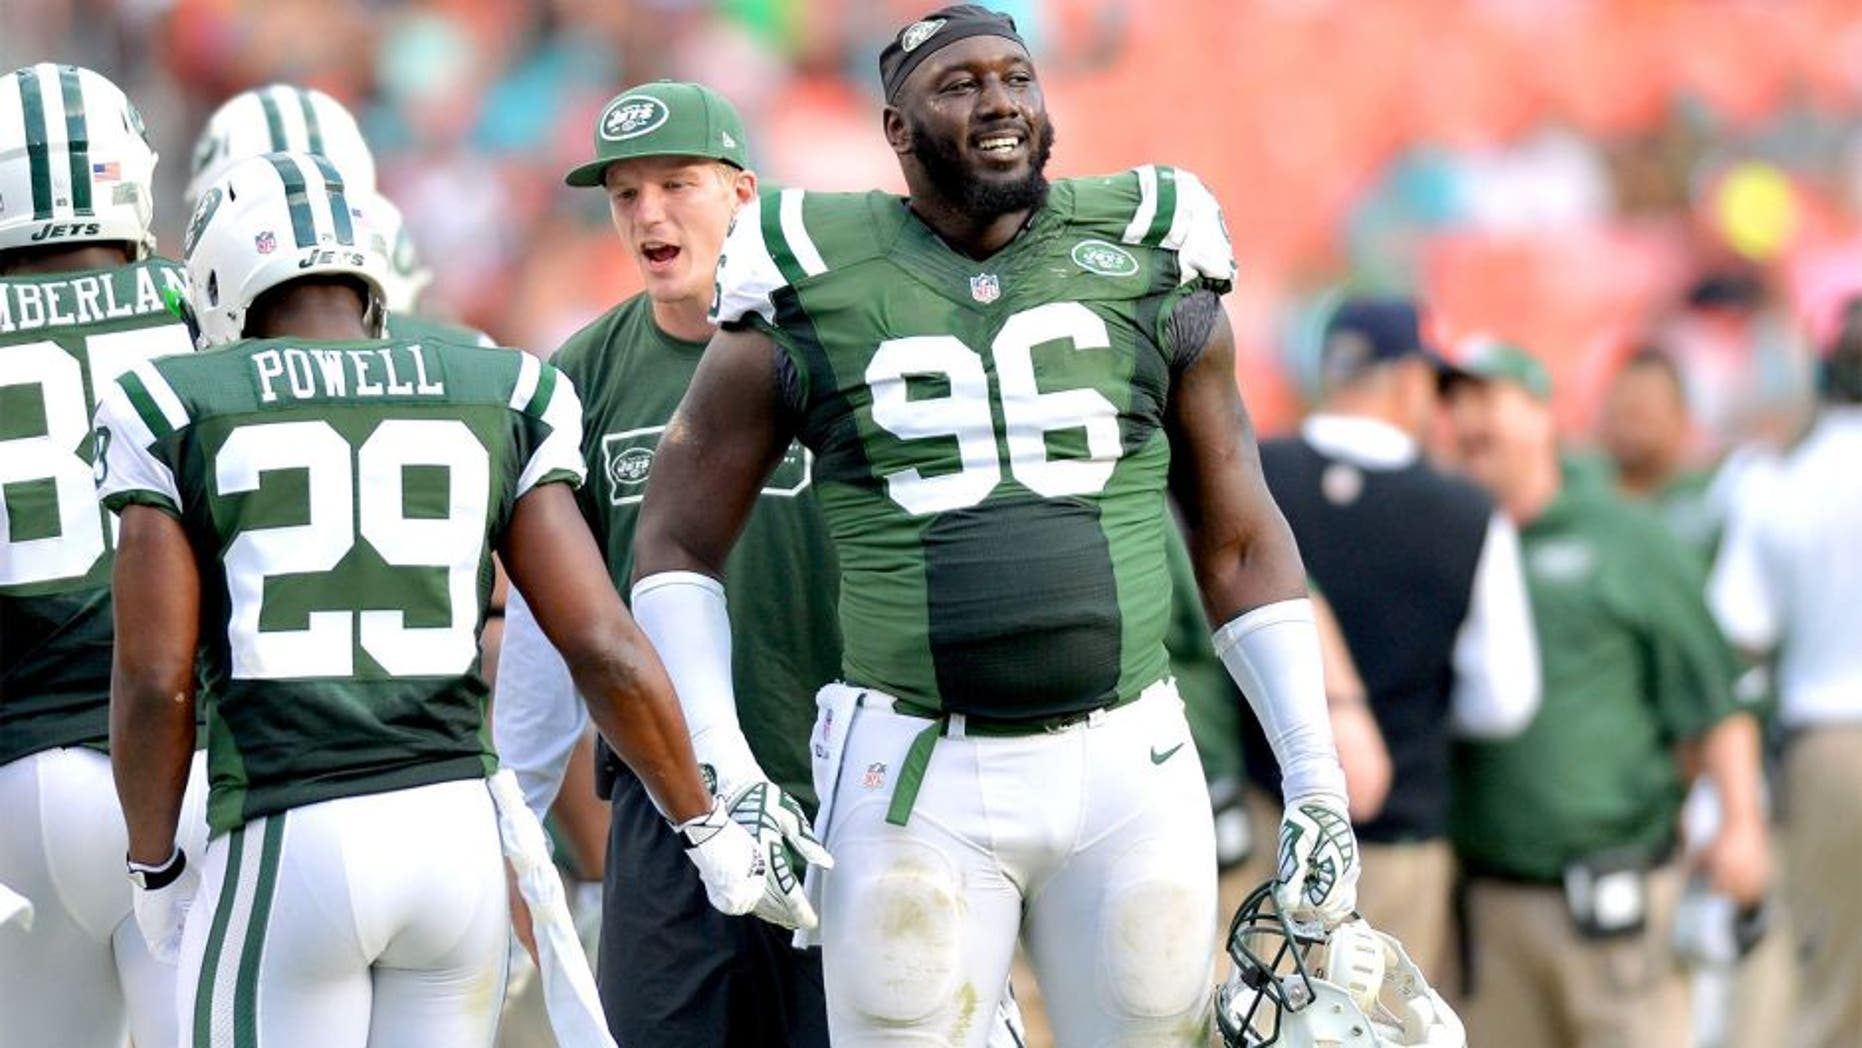 Dec 28, 2014; Miami Gardens, FL, USA; New York Jets defensive end Muhammad Wilkerson (96) laughs on the sideline during the second half against the Miami Dolphins at Sun Life Stadium. Mandatory Credit: Steve Mitchell-USA TODAY Sports